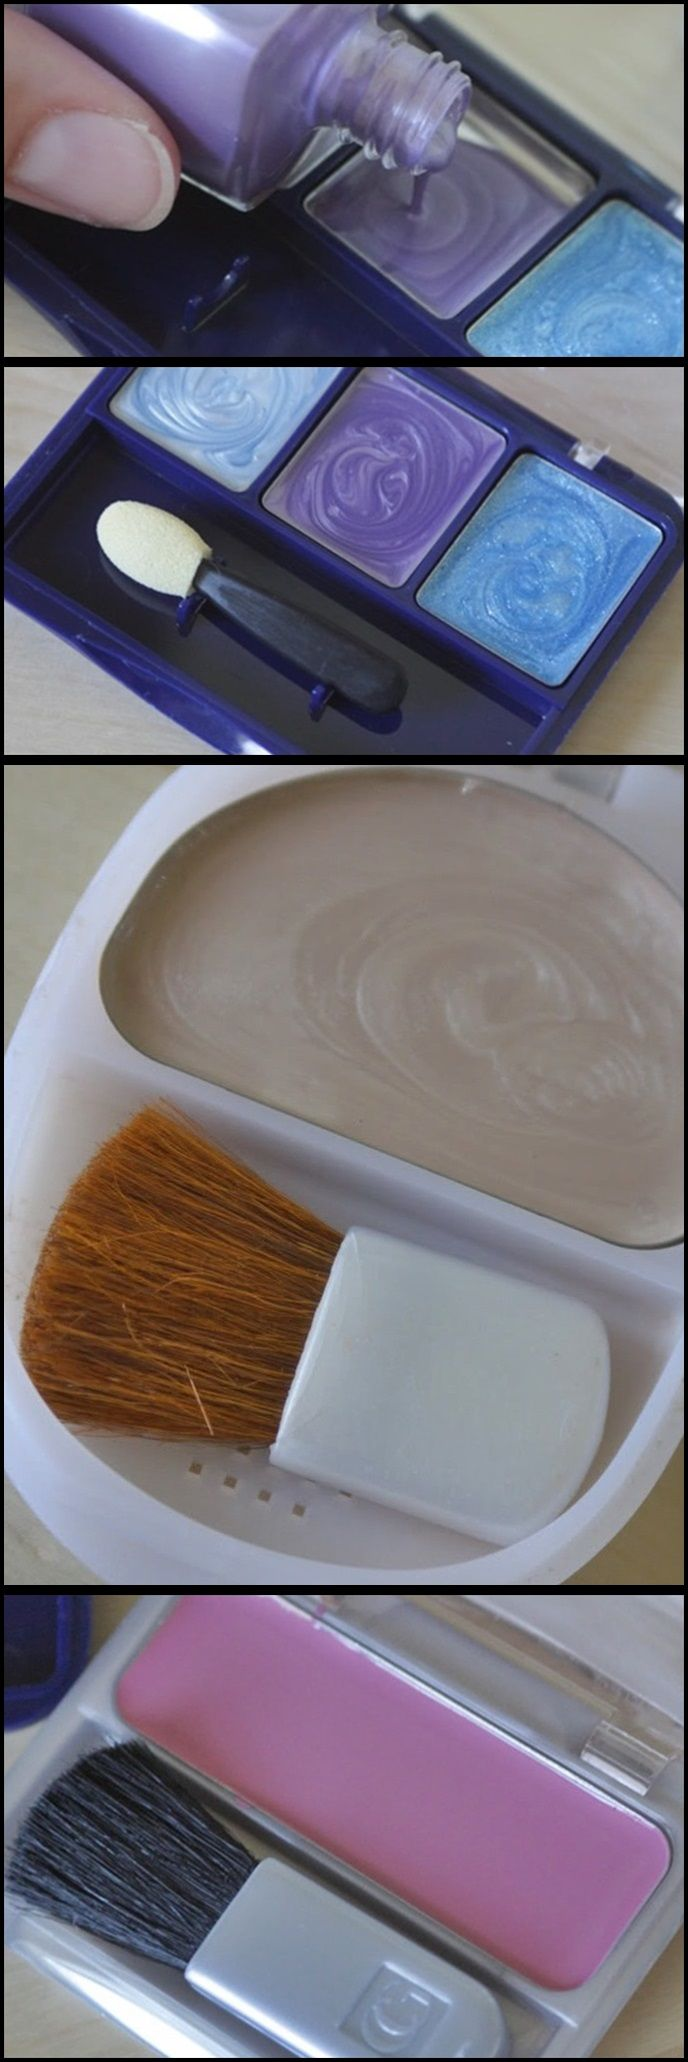 We don't want our kids to get used to wearing real makeup too young.So,save your empty makeup containers for your girls to play with.It's ssooo easy AND it looks totally REAL,so your kiddos will LOVE it!Just wash out your old makeup containers with soap and water and let them dry thoroughly.Then,(once you've gotten some cheap…